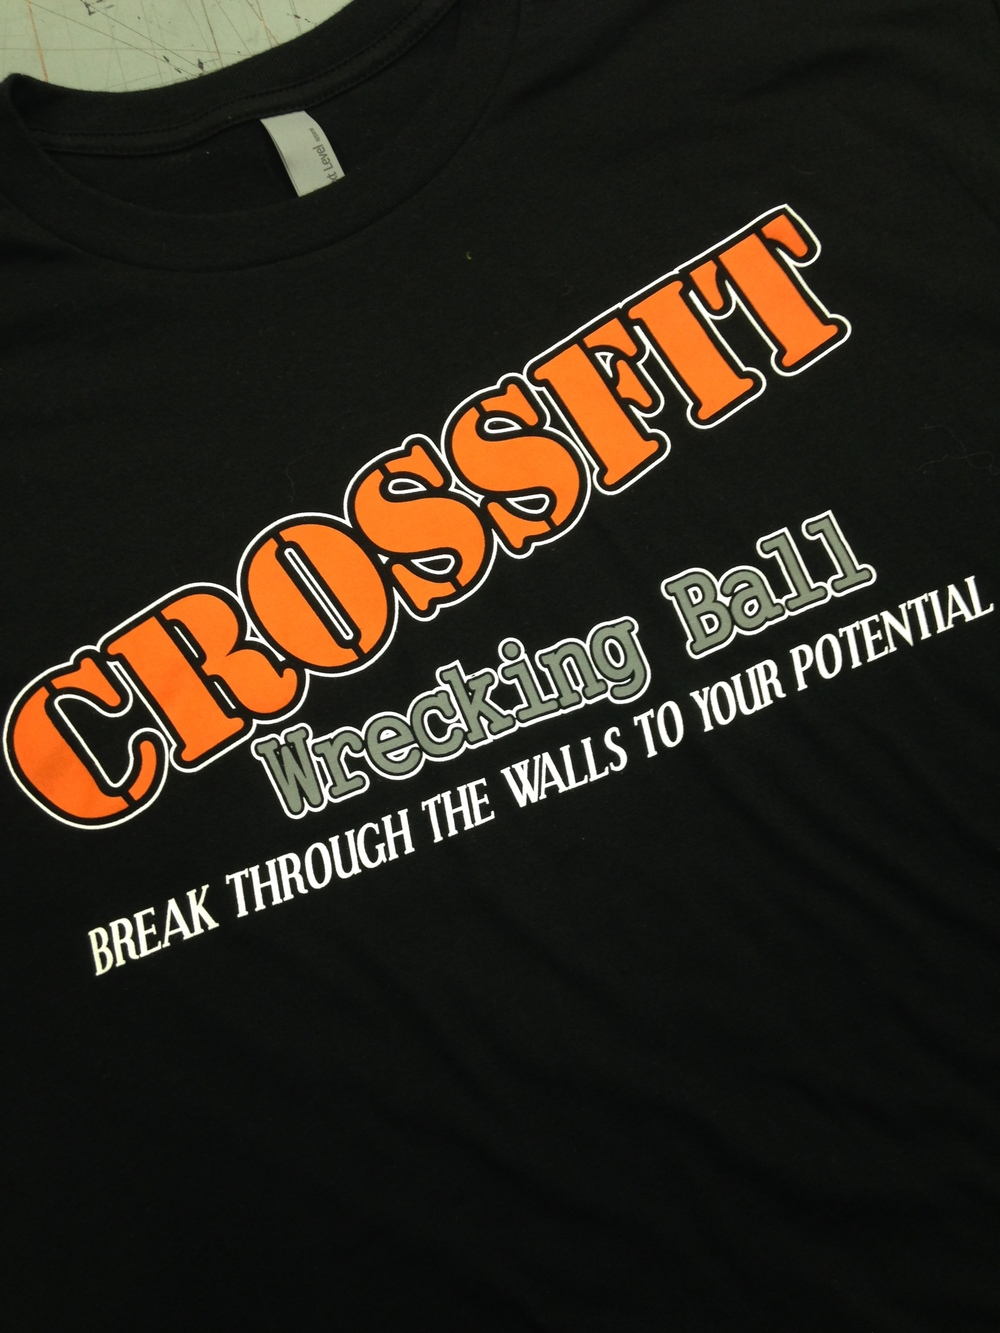 Crossfit Wrecking ball 1.JPG